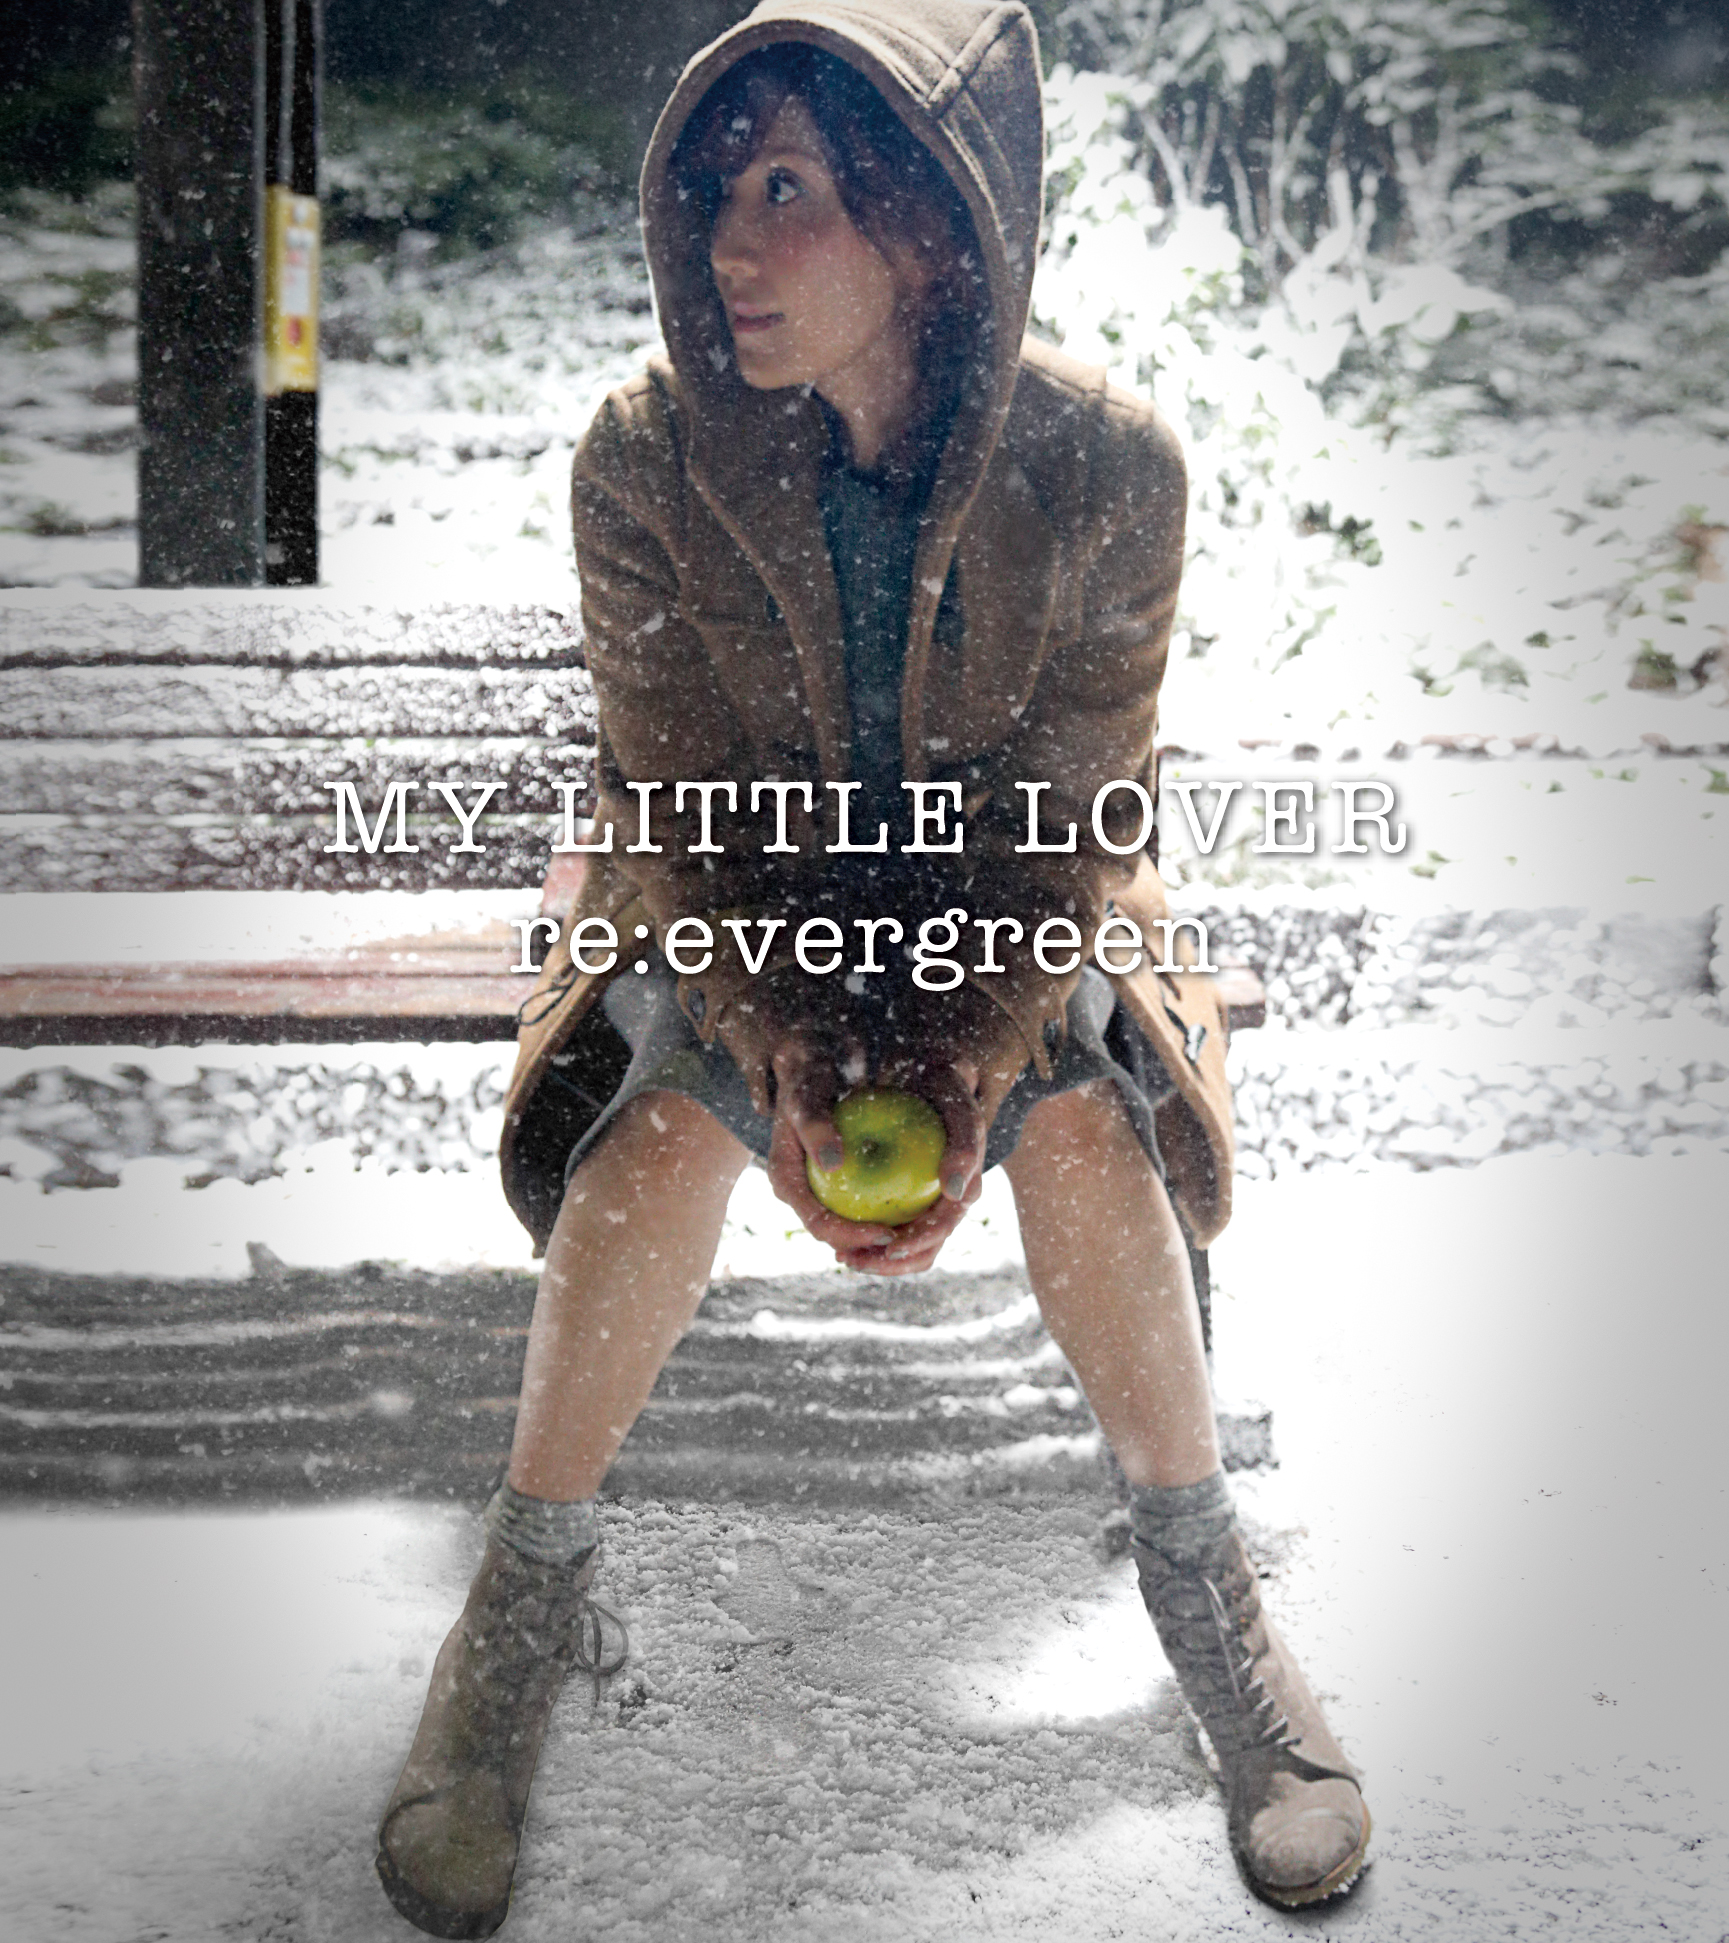 20171021.1950.5 My Little Lover - re evergreen (M4A) cover.jpg